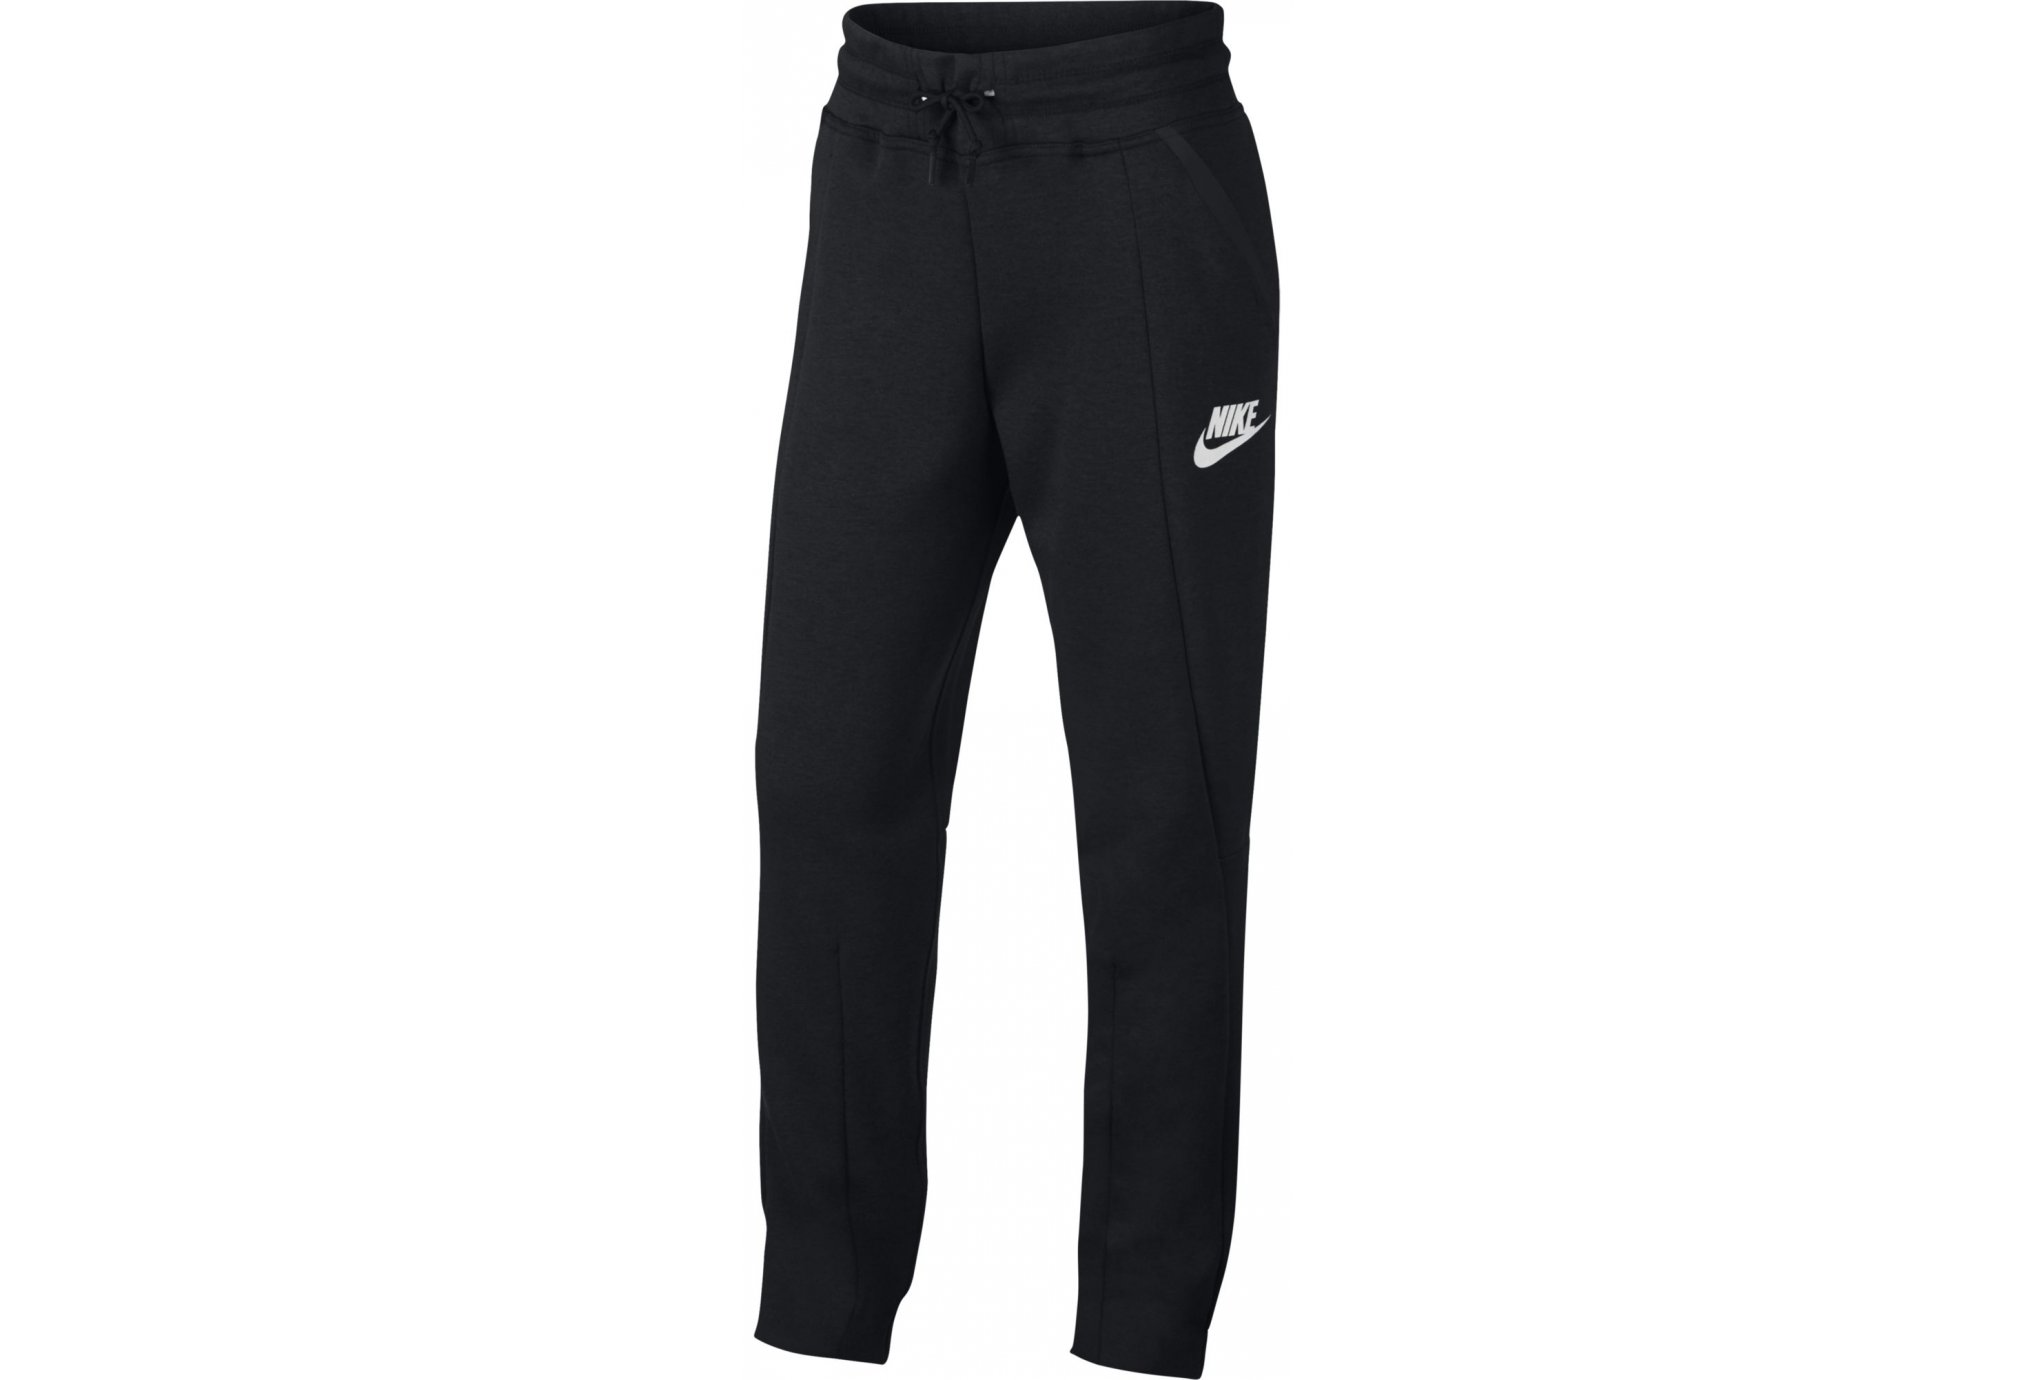 Nike Tech Fleece Fille vêtement running femme